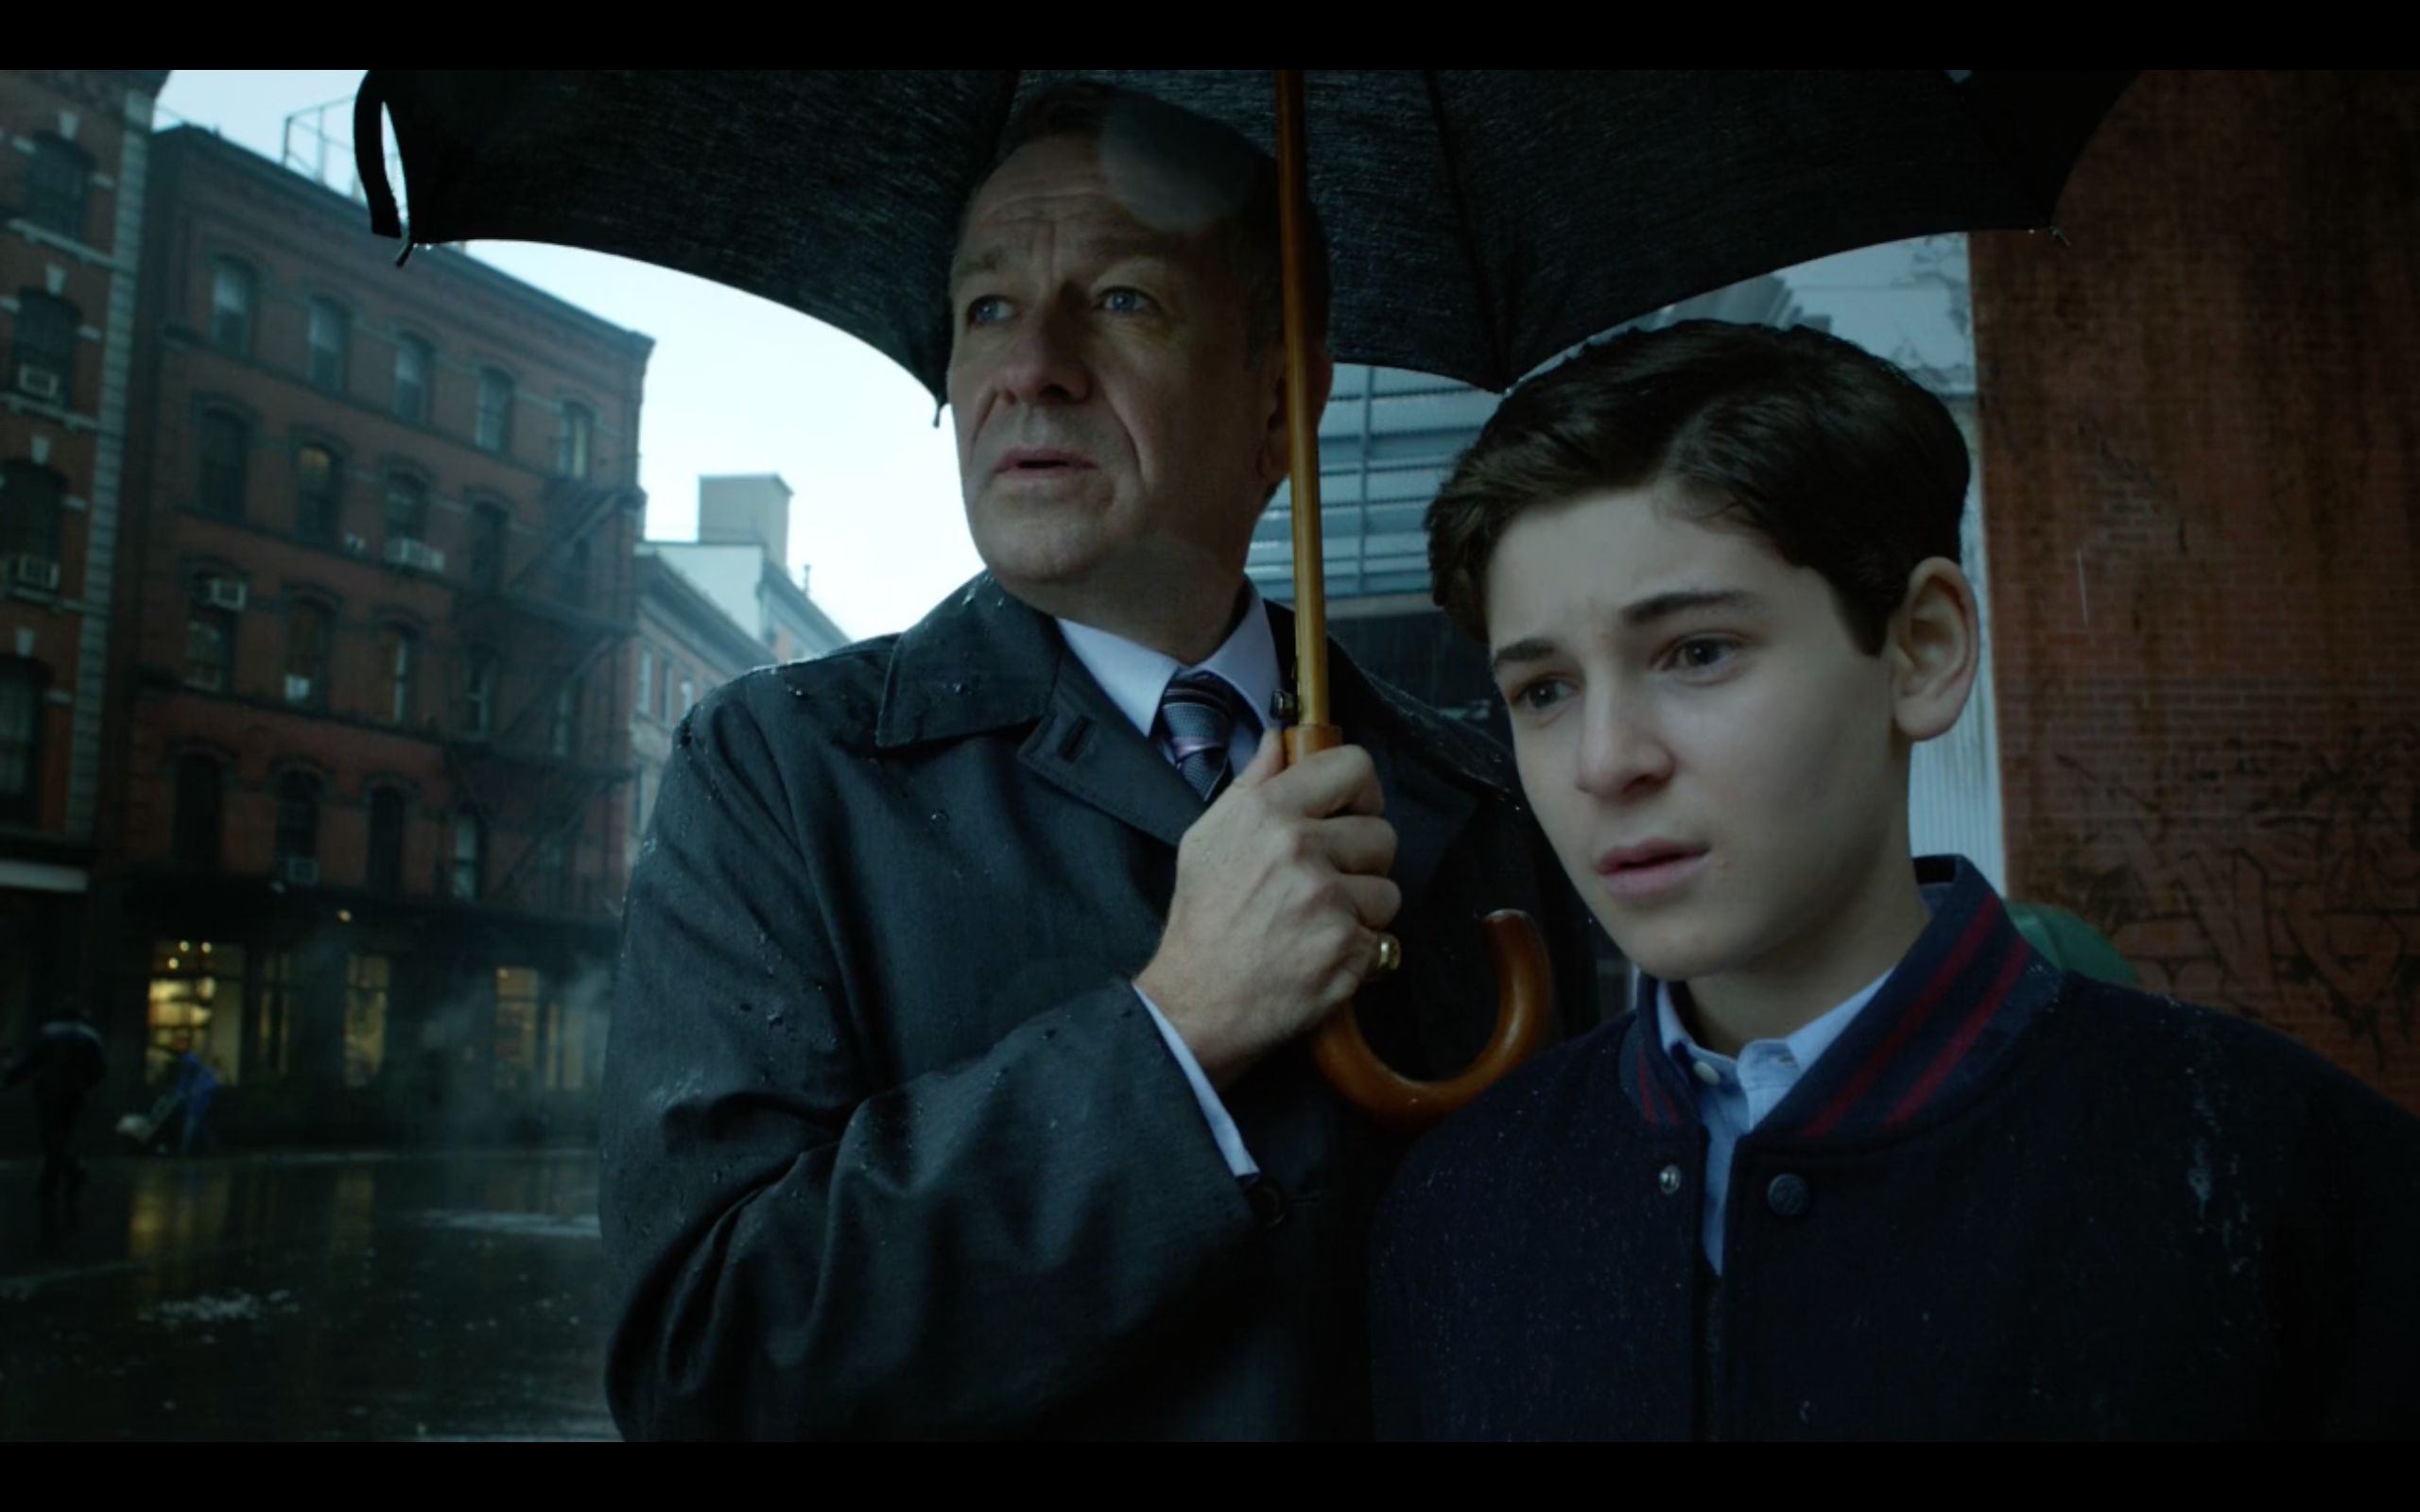 David Mazouz as Bruce Wayne and Sean Pertwee as Alfred Pennyworth in 'Gotham'